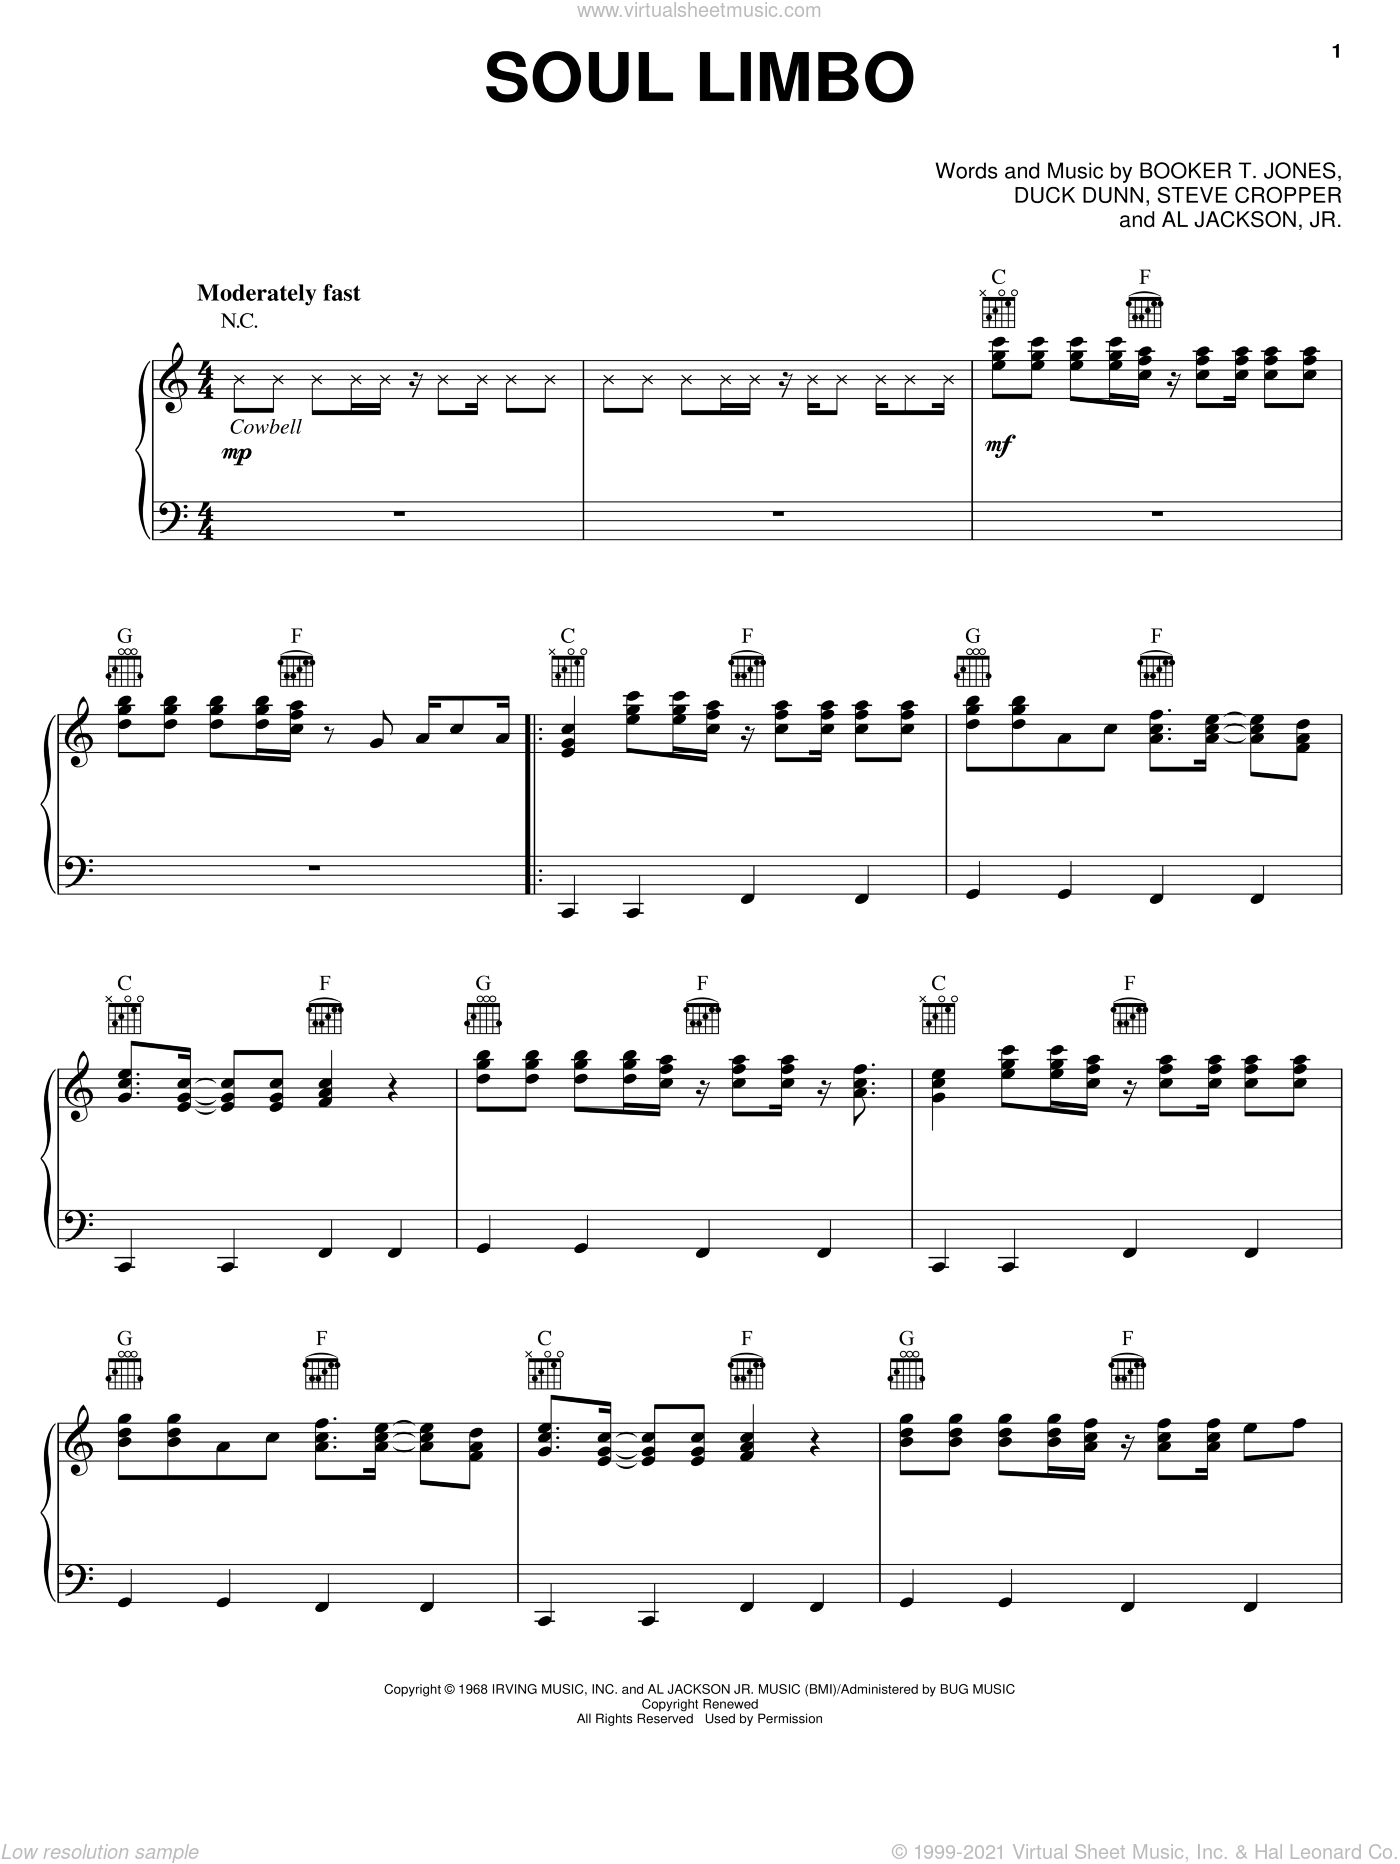 Soul Limbo sheet music for voice, piano or guitar by Duck Dunn